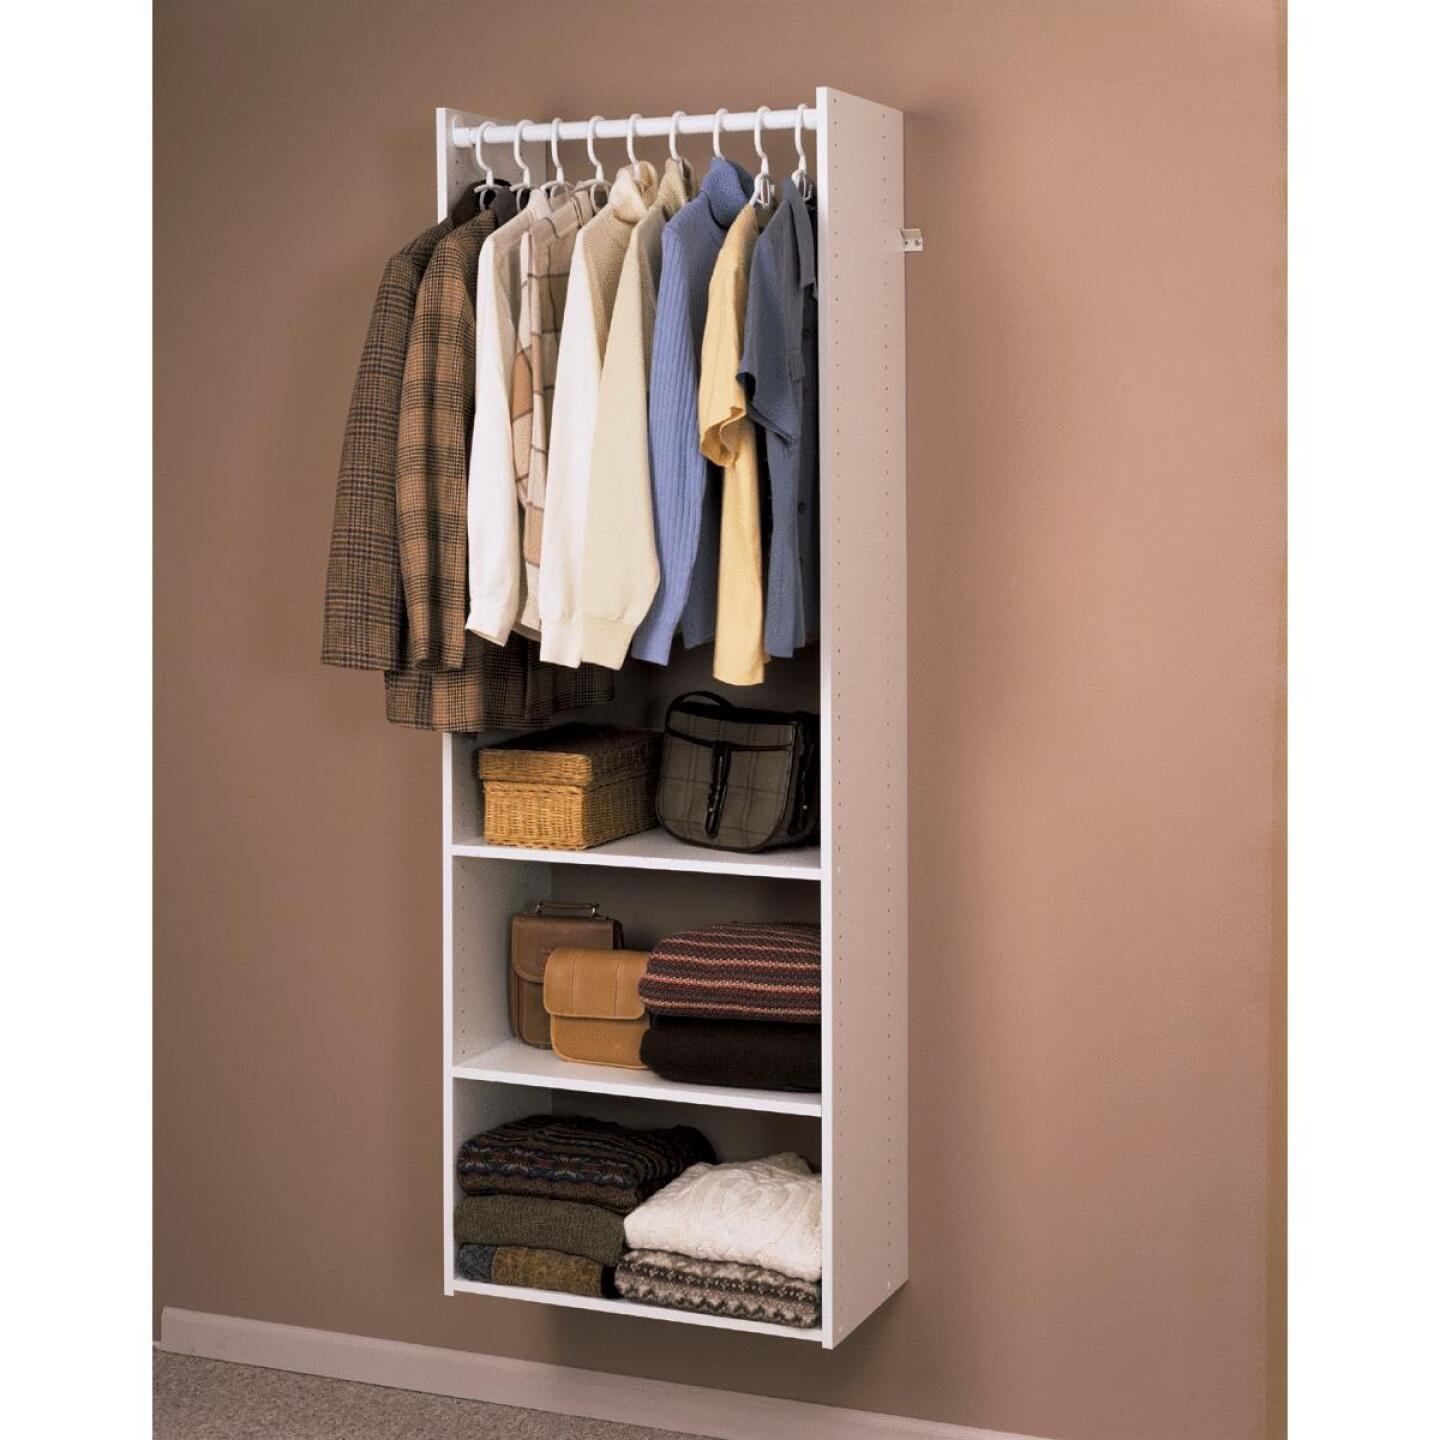 Easy Track Hanging Tower Wall-Mounted Shelving Unit, White Image 1